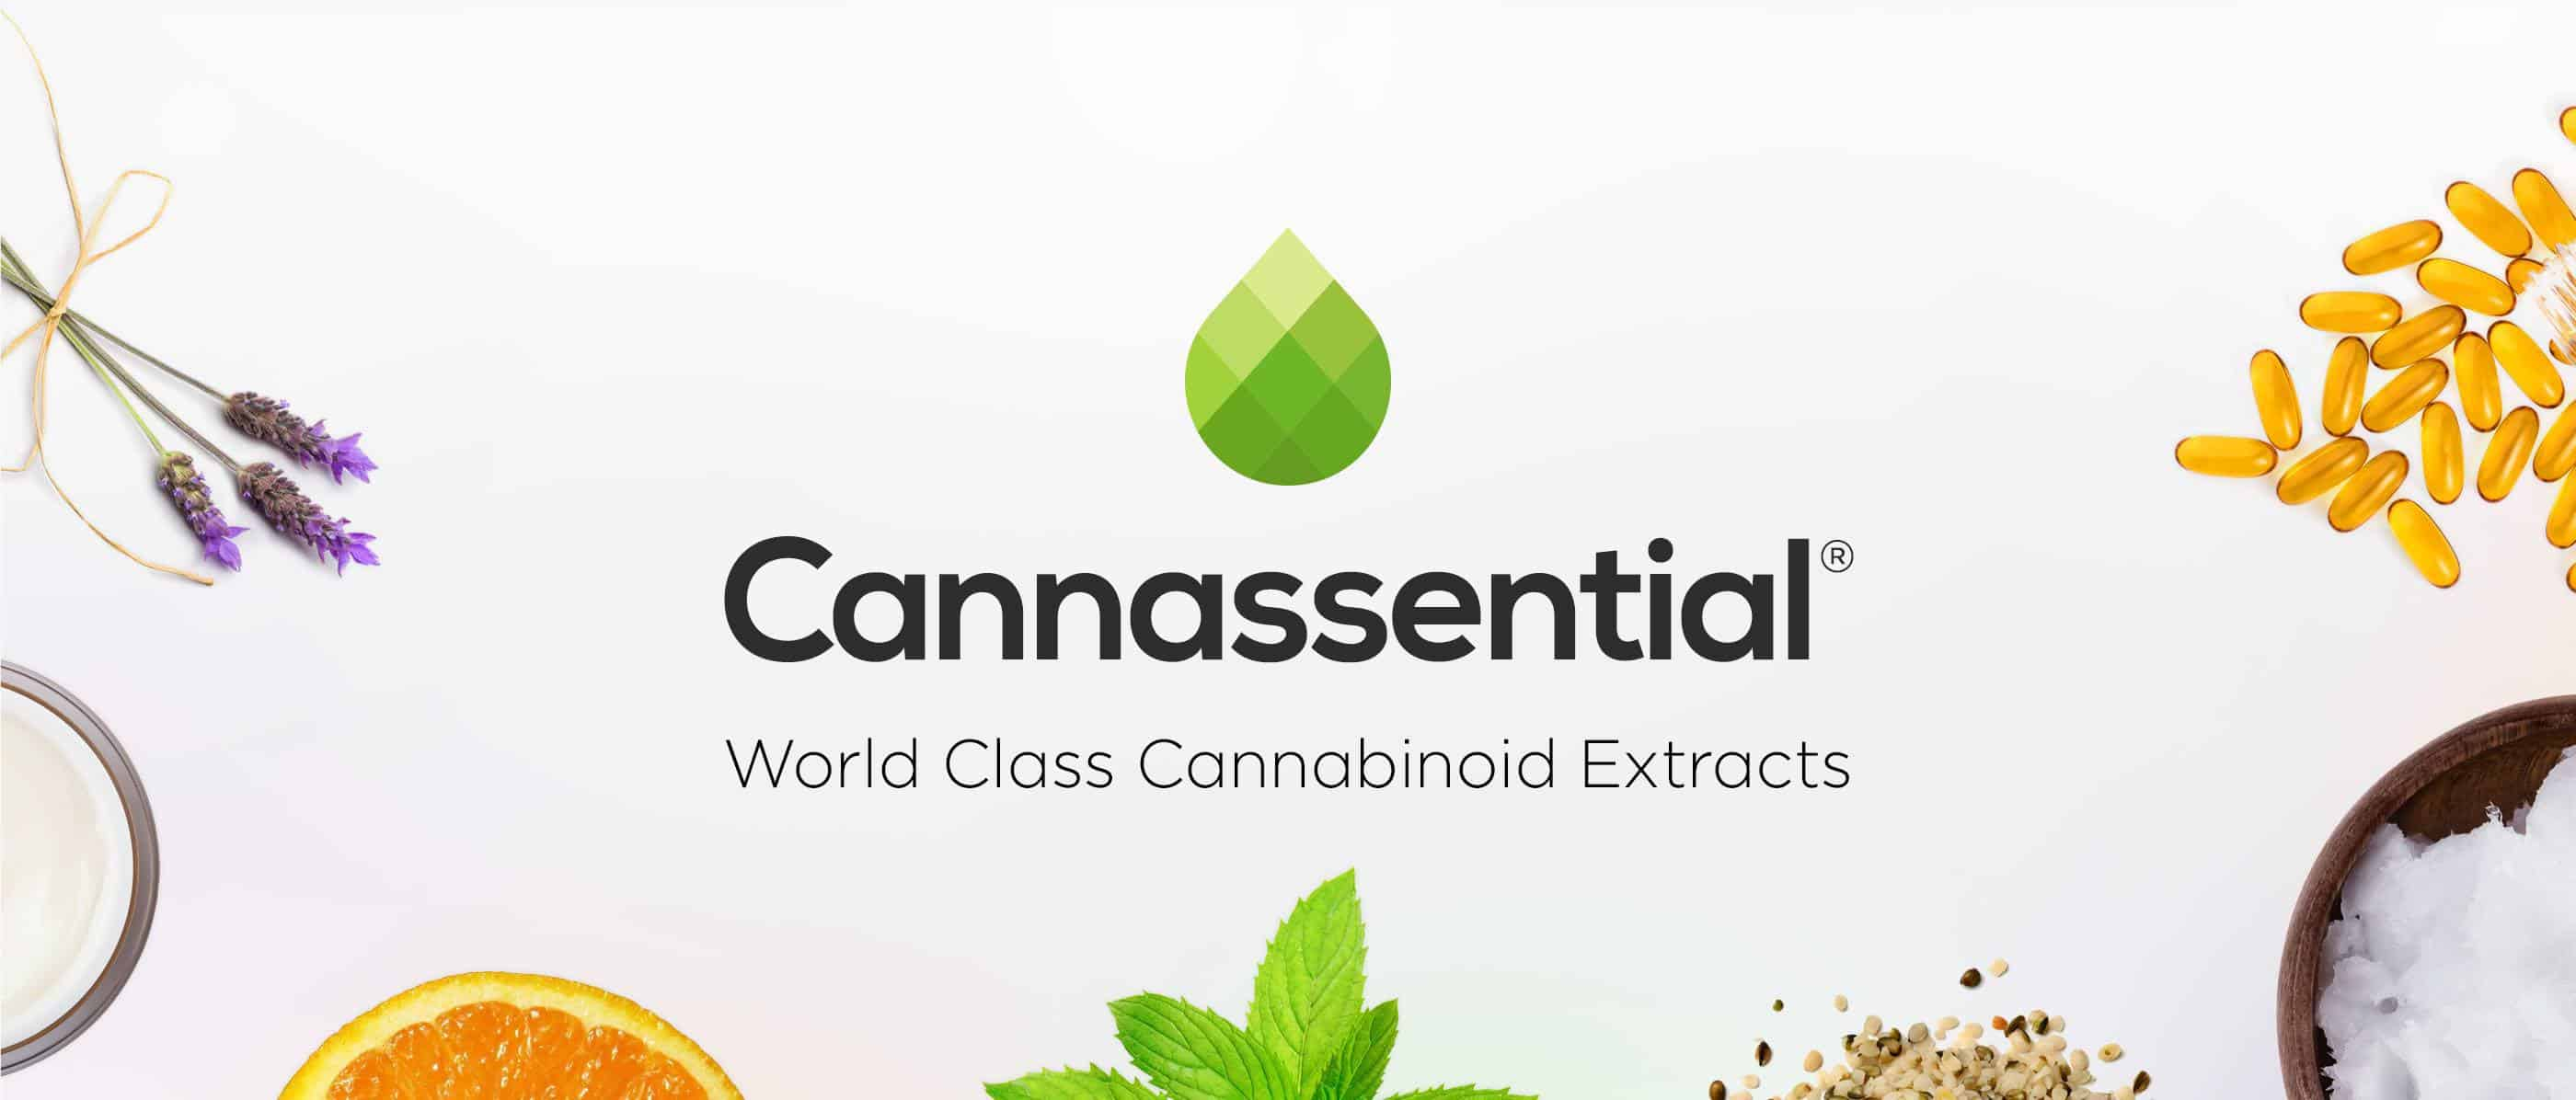 Cannassential Coupon Code - Online Discount - Save On Cannabis